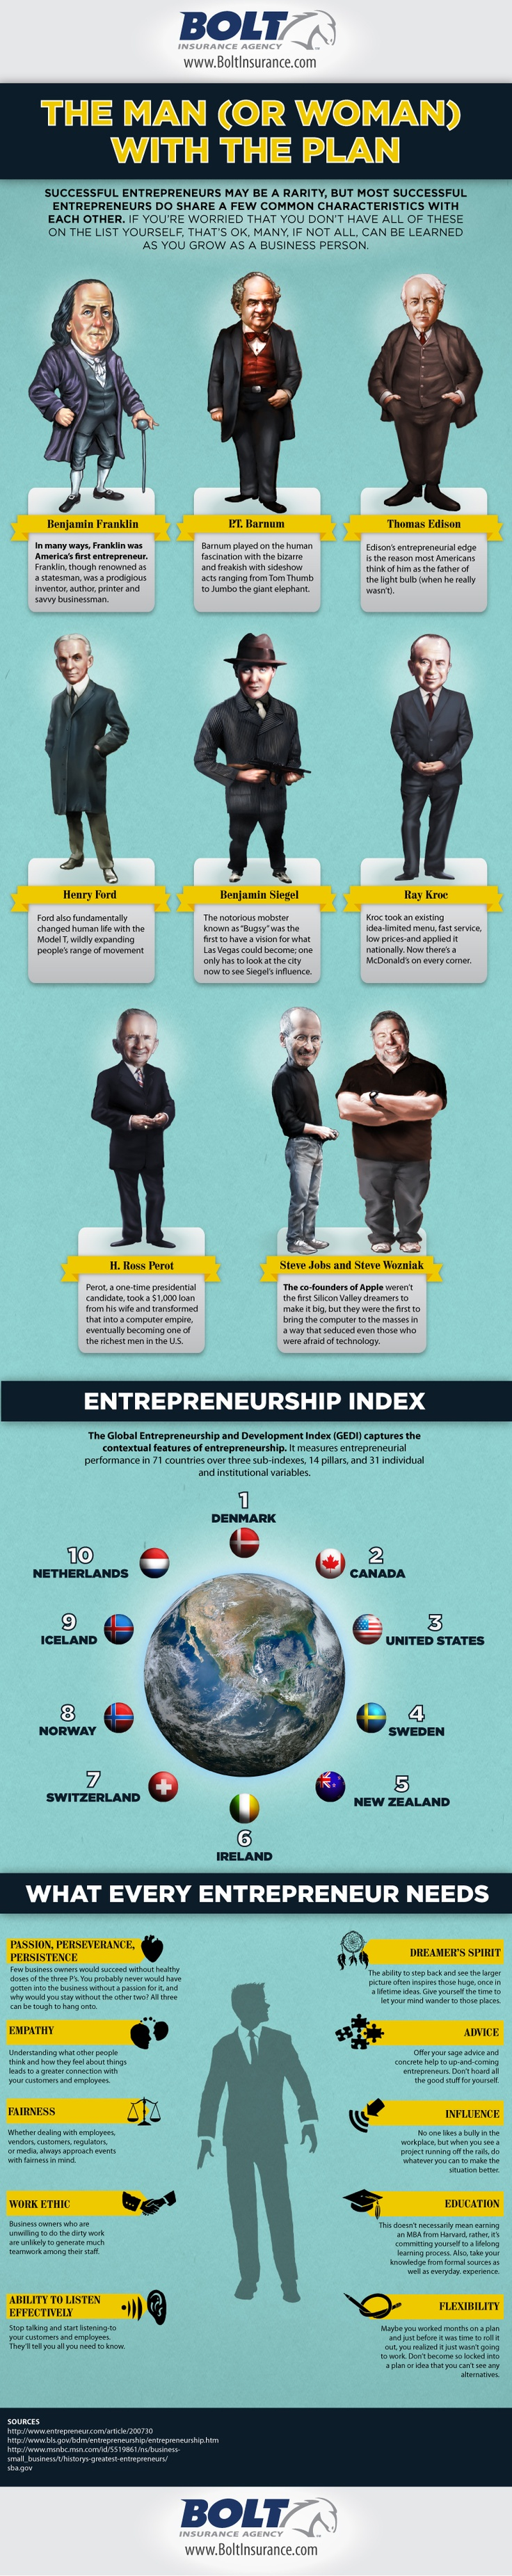 Most Successful Entrepreneurs in History